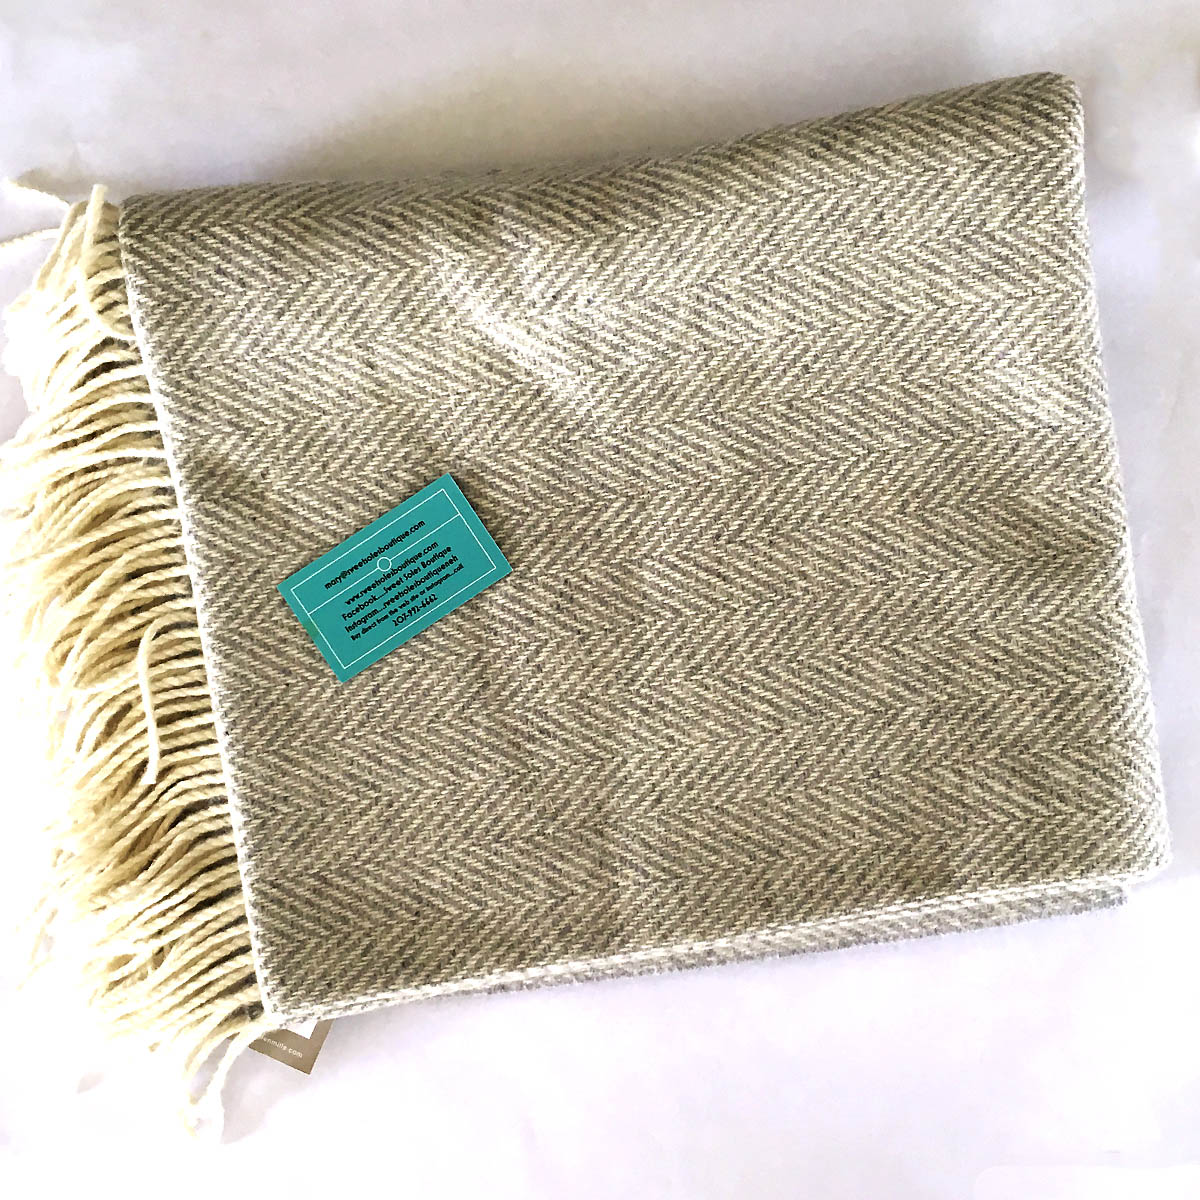 Irish Wool Blanket - This beautifully crafted Irish wool blanket was generously contributed by Sweet Soles Boutique on Sea Street in NEH. While it works as a great accessory to almost any piece of furniture in the house, it's so soft you'll have a hard time not wrapping yourself up every time there's a chill in the air.Retail Value: $200.00